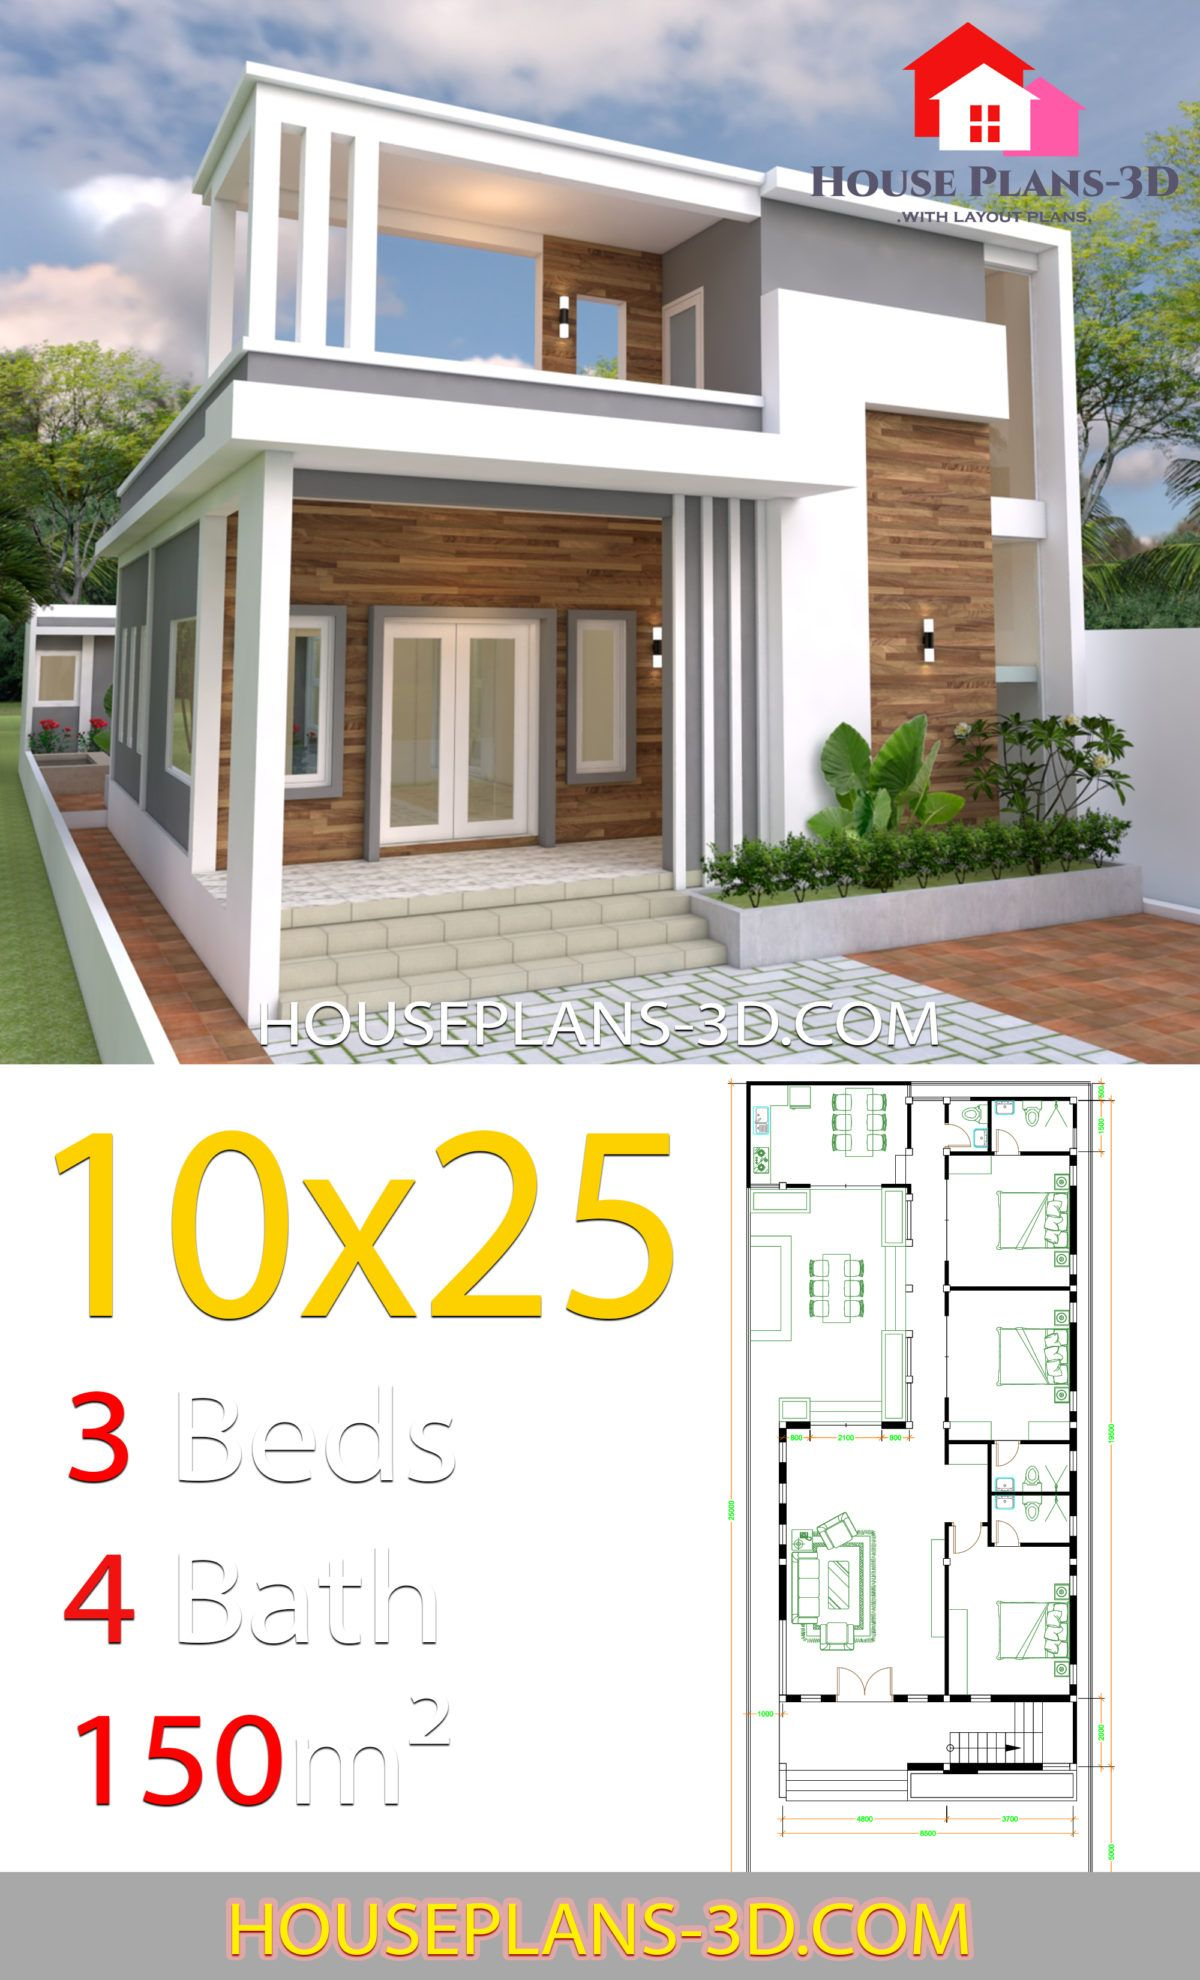 House Design Plans 10x25 With 3 Bedrooms House Plans 3d In 2020 House Plans House Design Modern House Plans